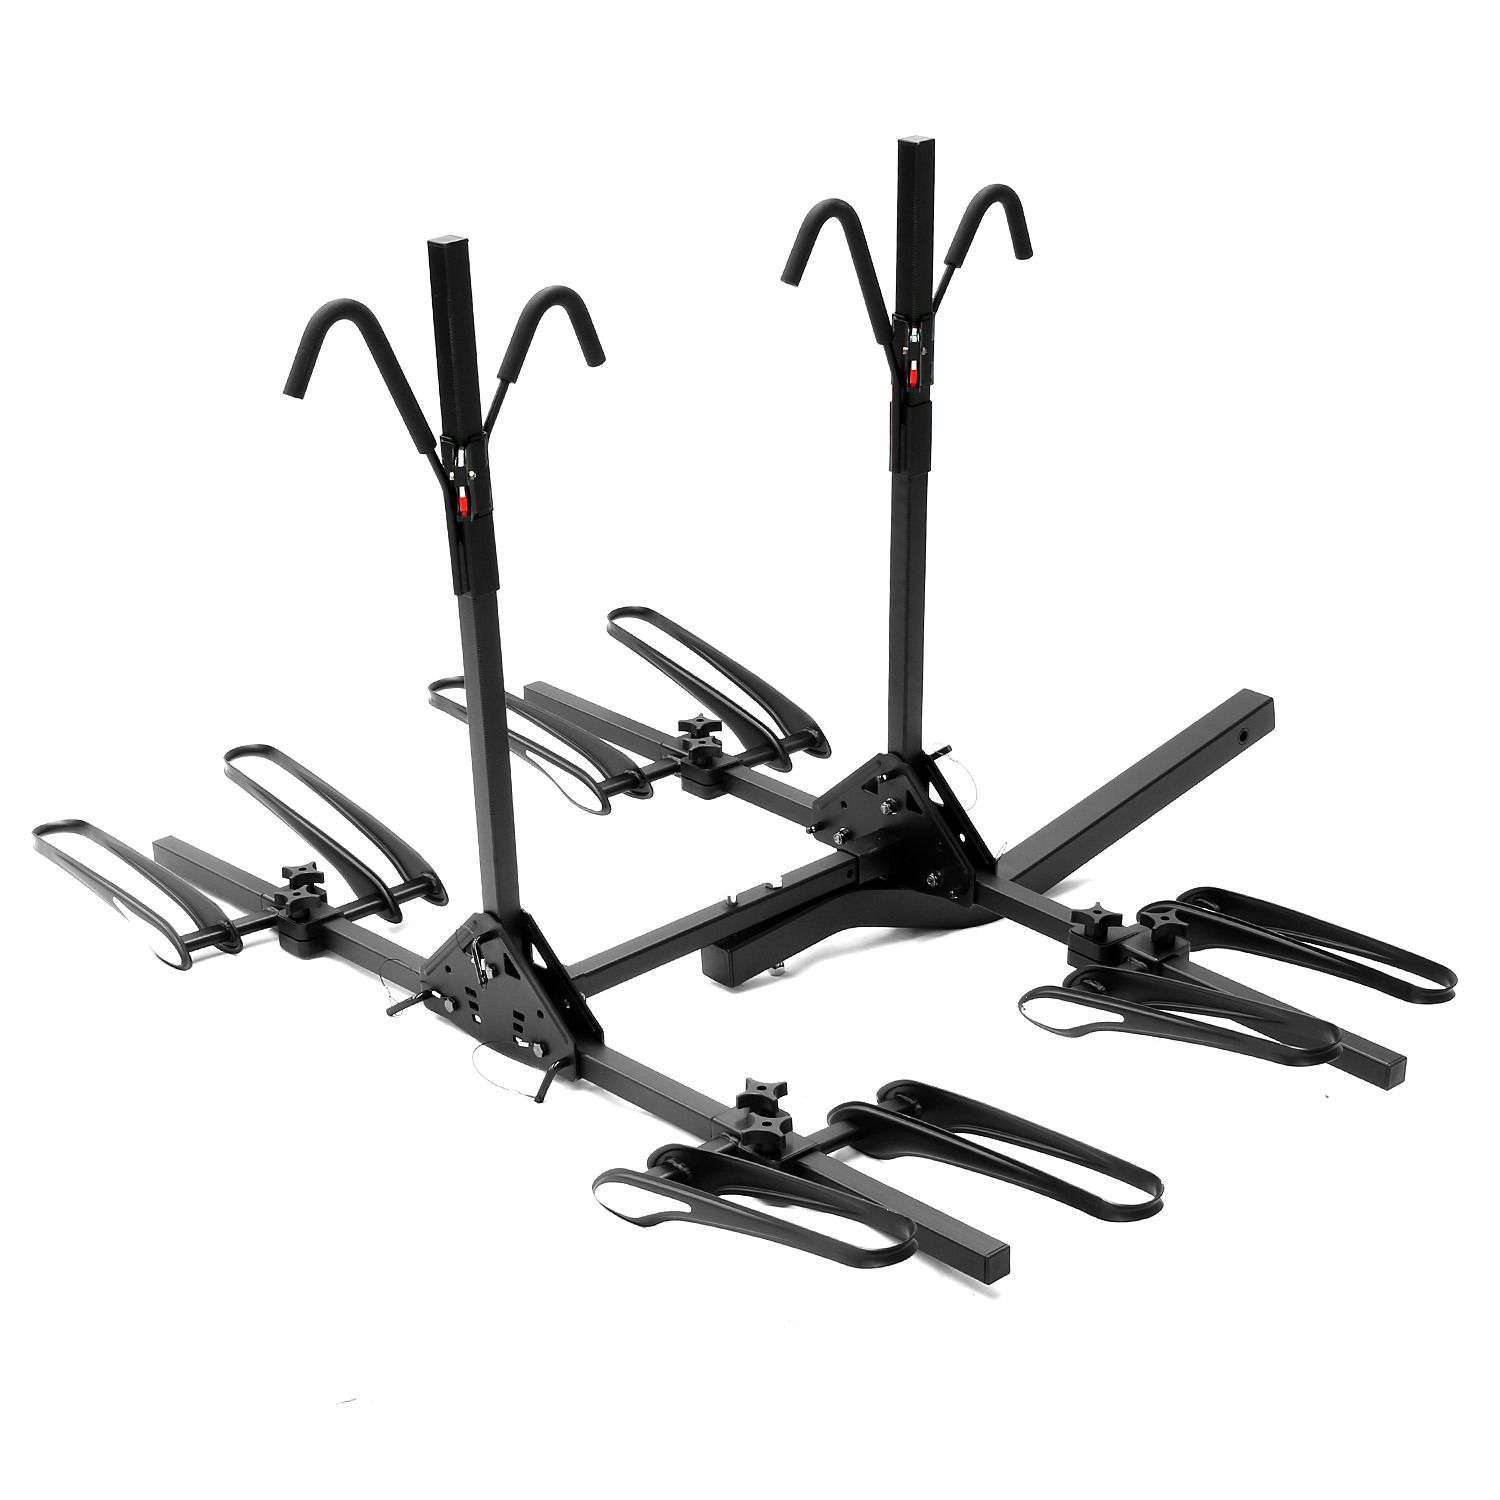 "4 Bicycle Bike Rack 2"" Hitch Mount Carrier Car"